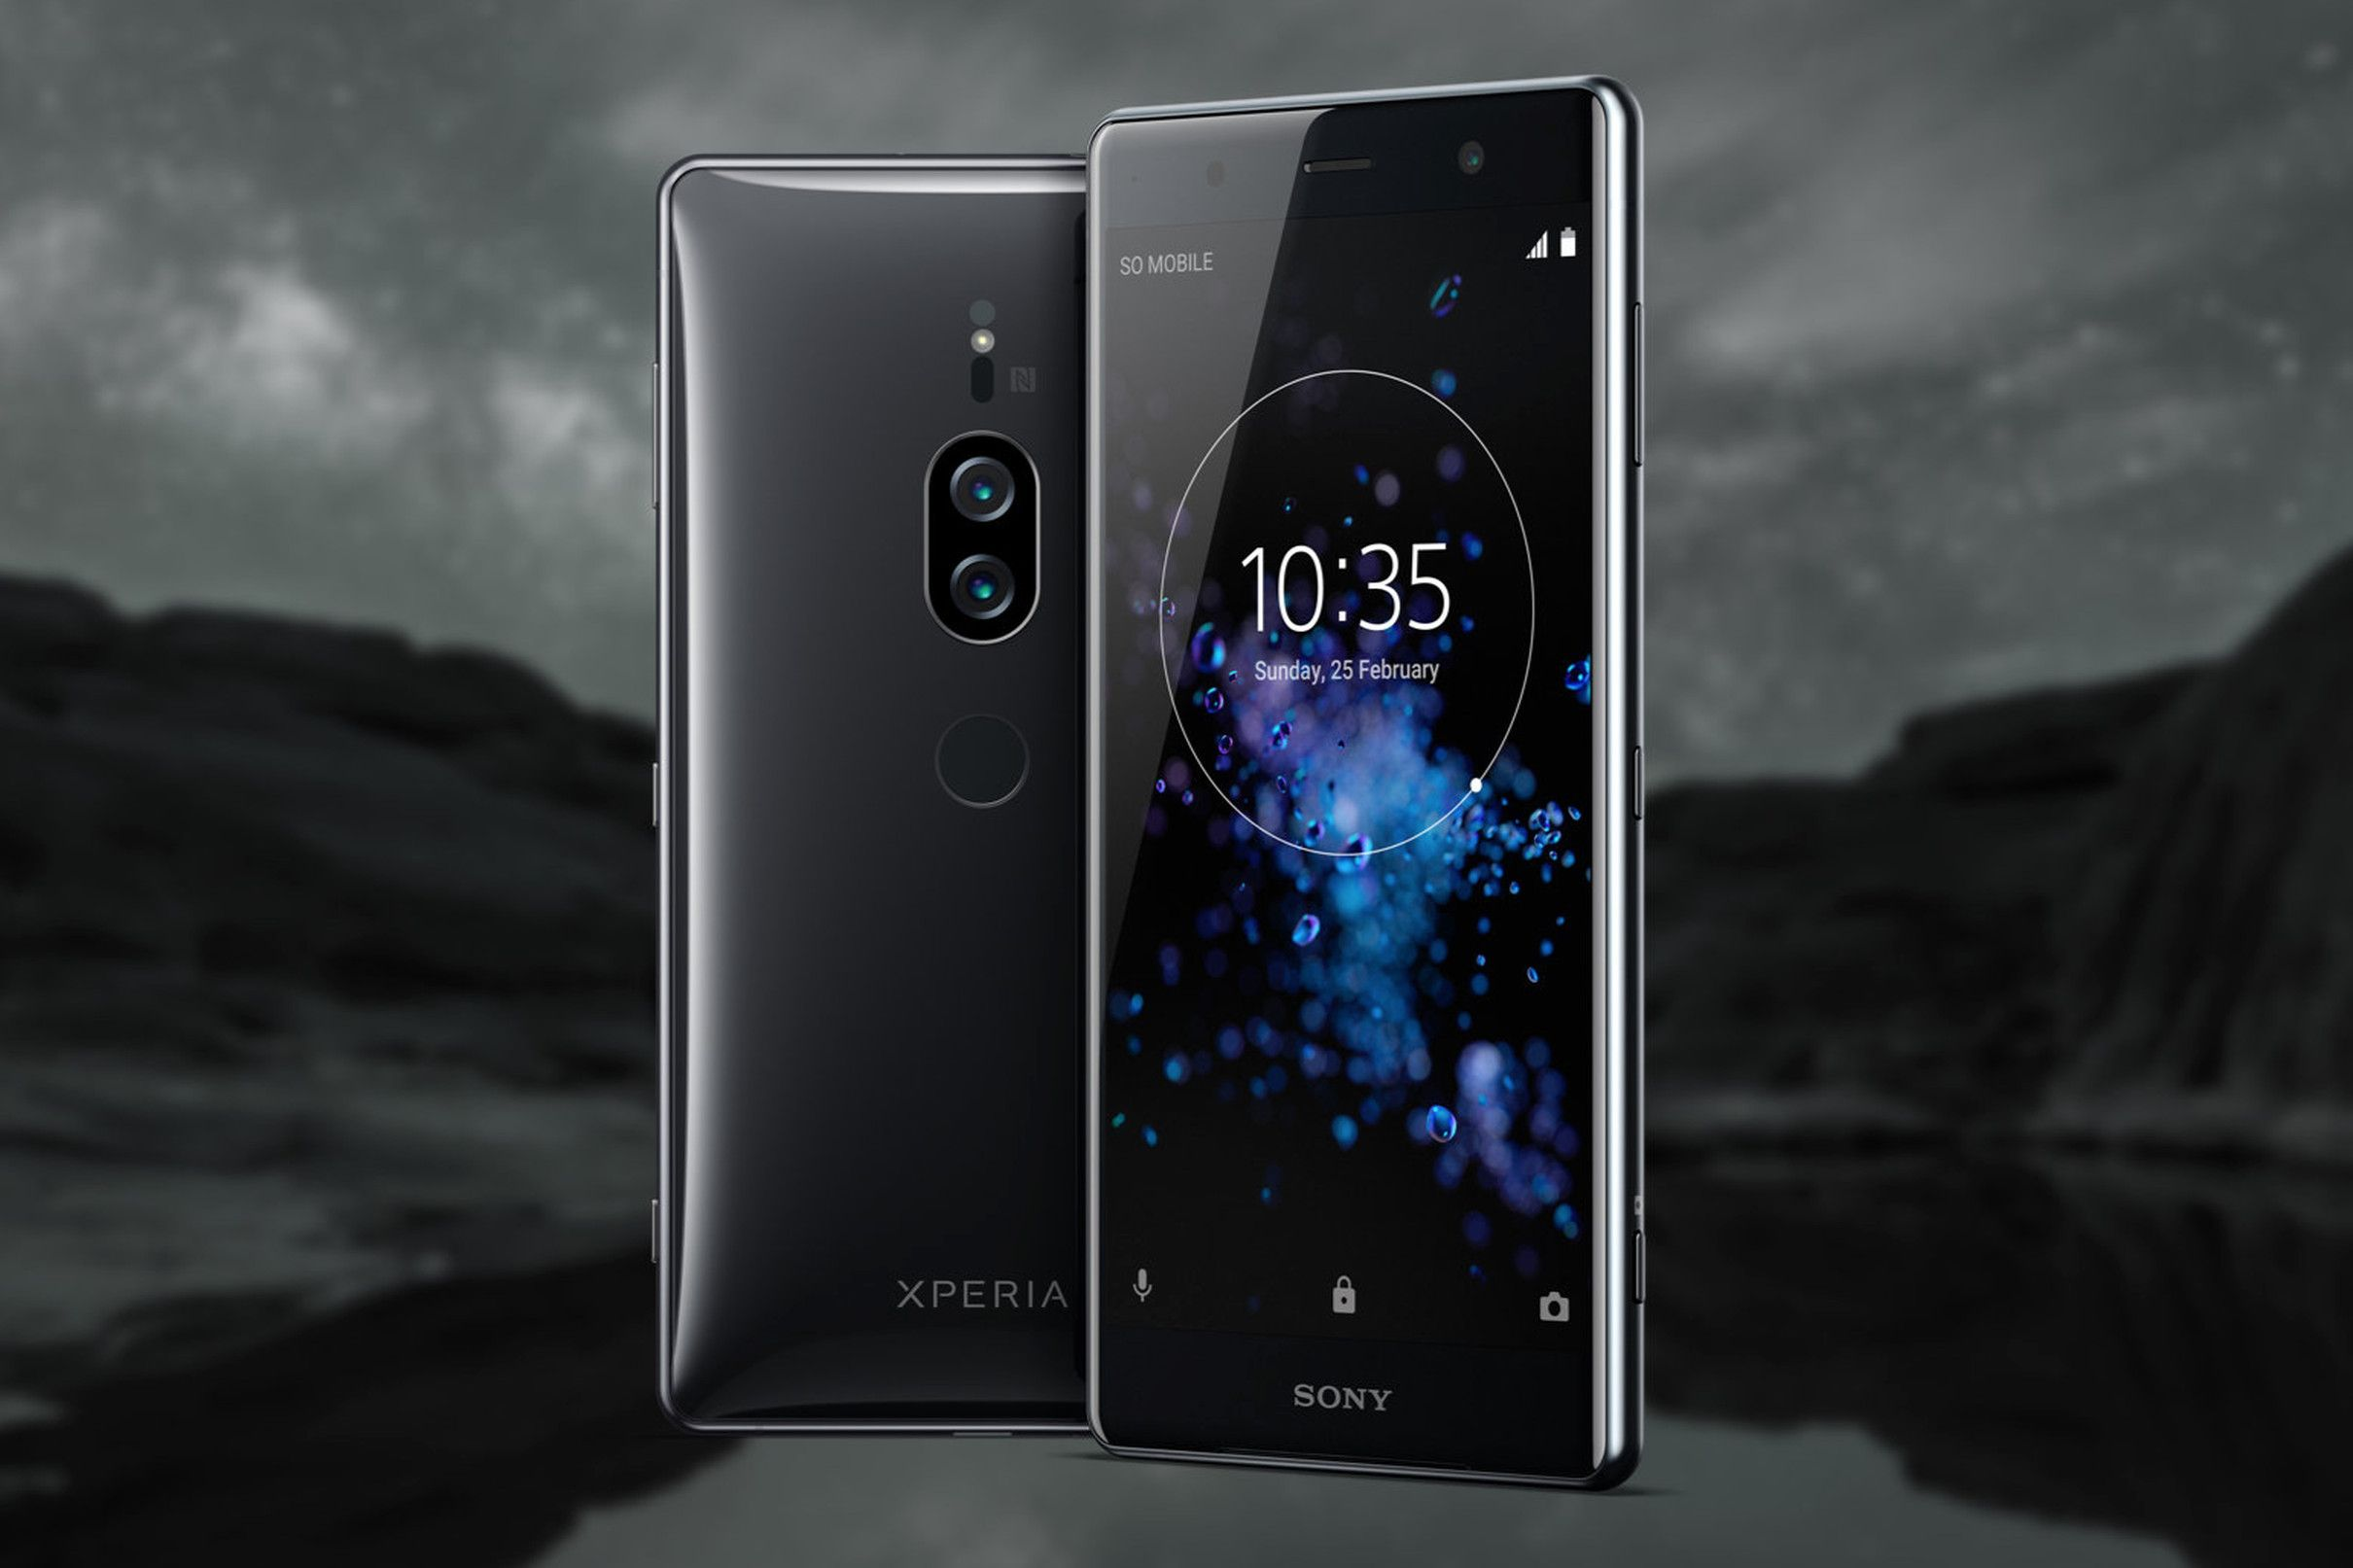 Sony S Xperia Xz2 Premium Has A 4k Display And Cameras Built For Extreme Low Light Shooting Motorola Phone Sony Mobile Phones Sony Xperia